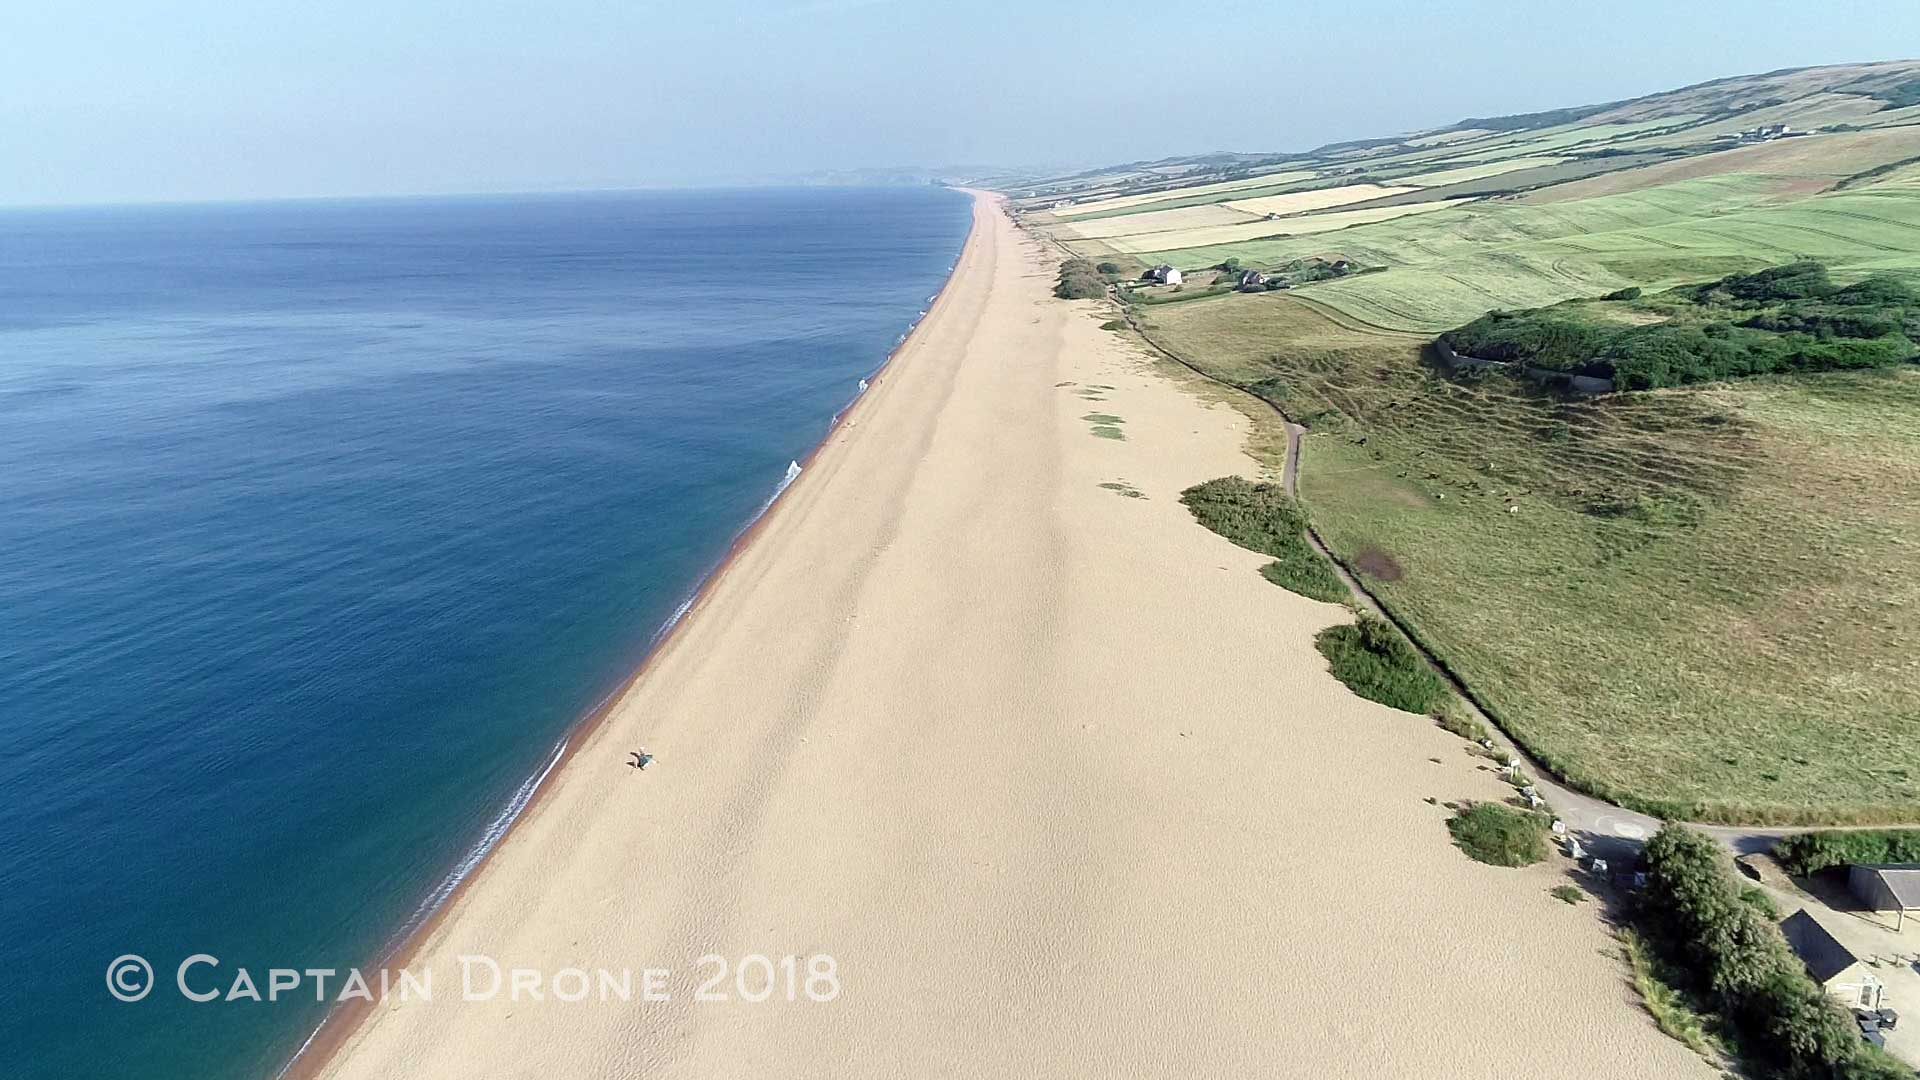 Chesil Beach aerial photography by Captain Drone